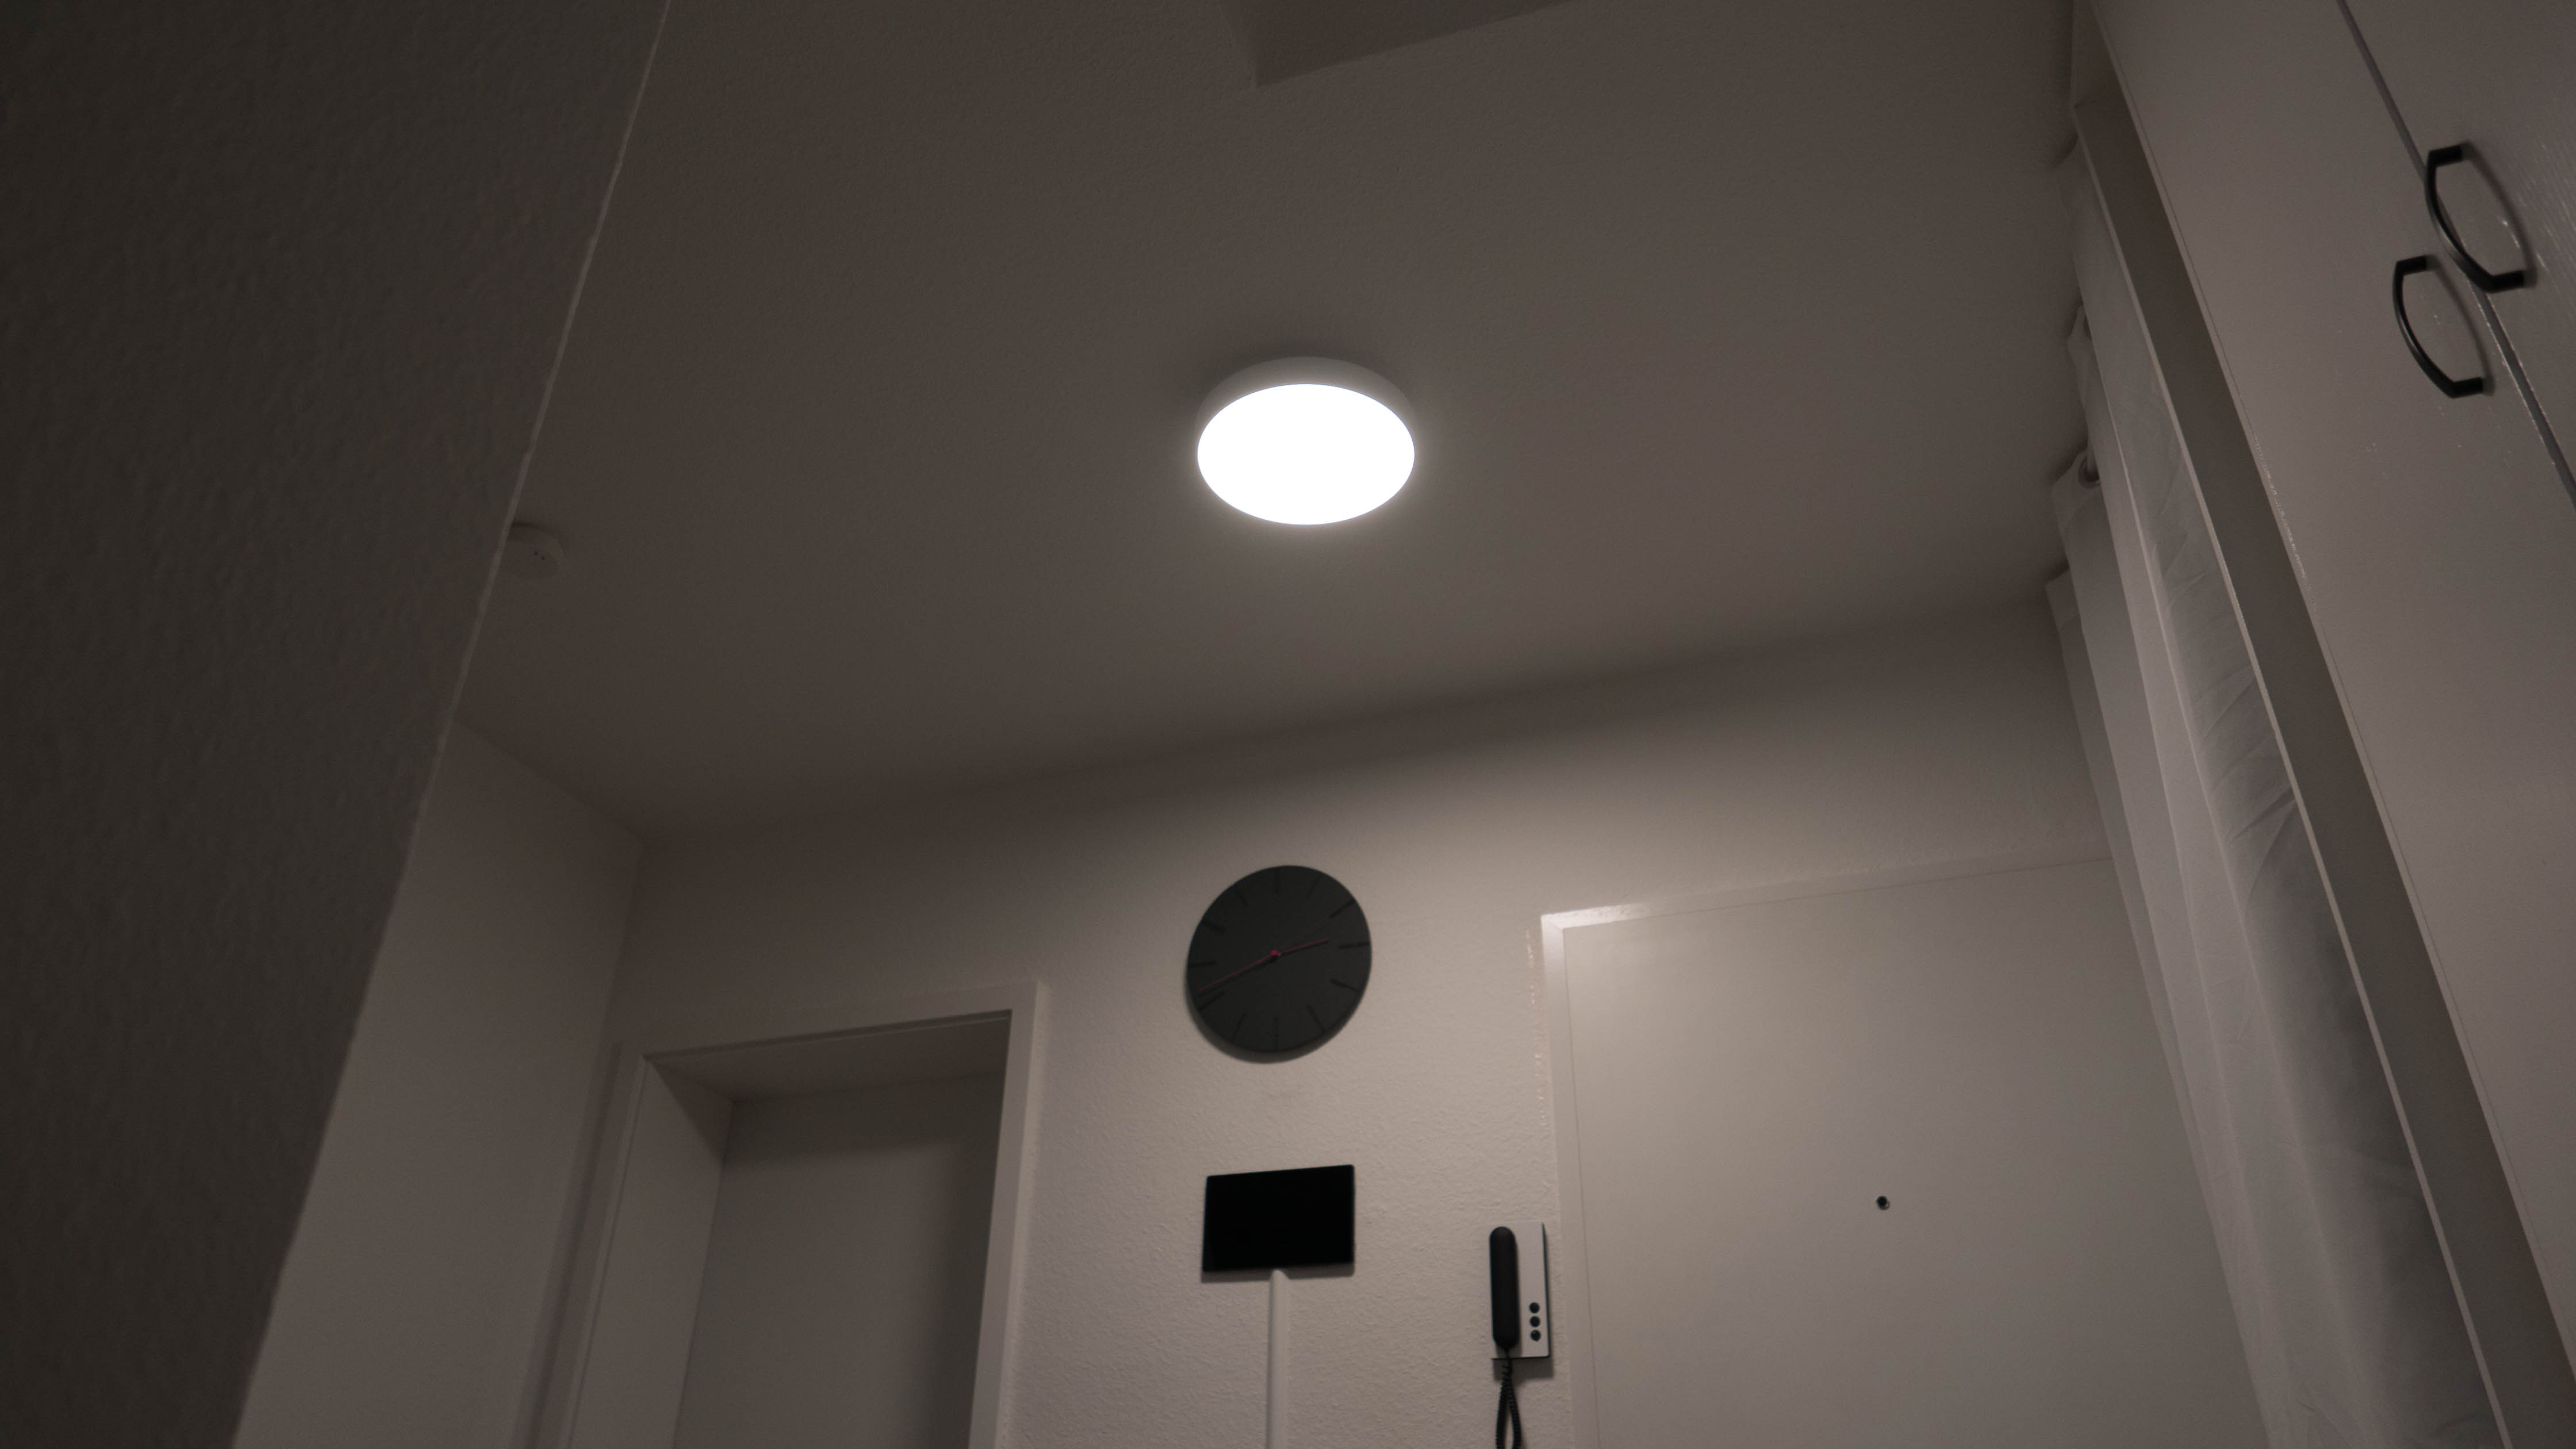 Xiaomi Yeelight LED Ceiling Light Farbtemperatur 3